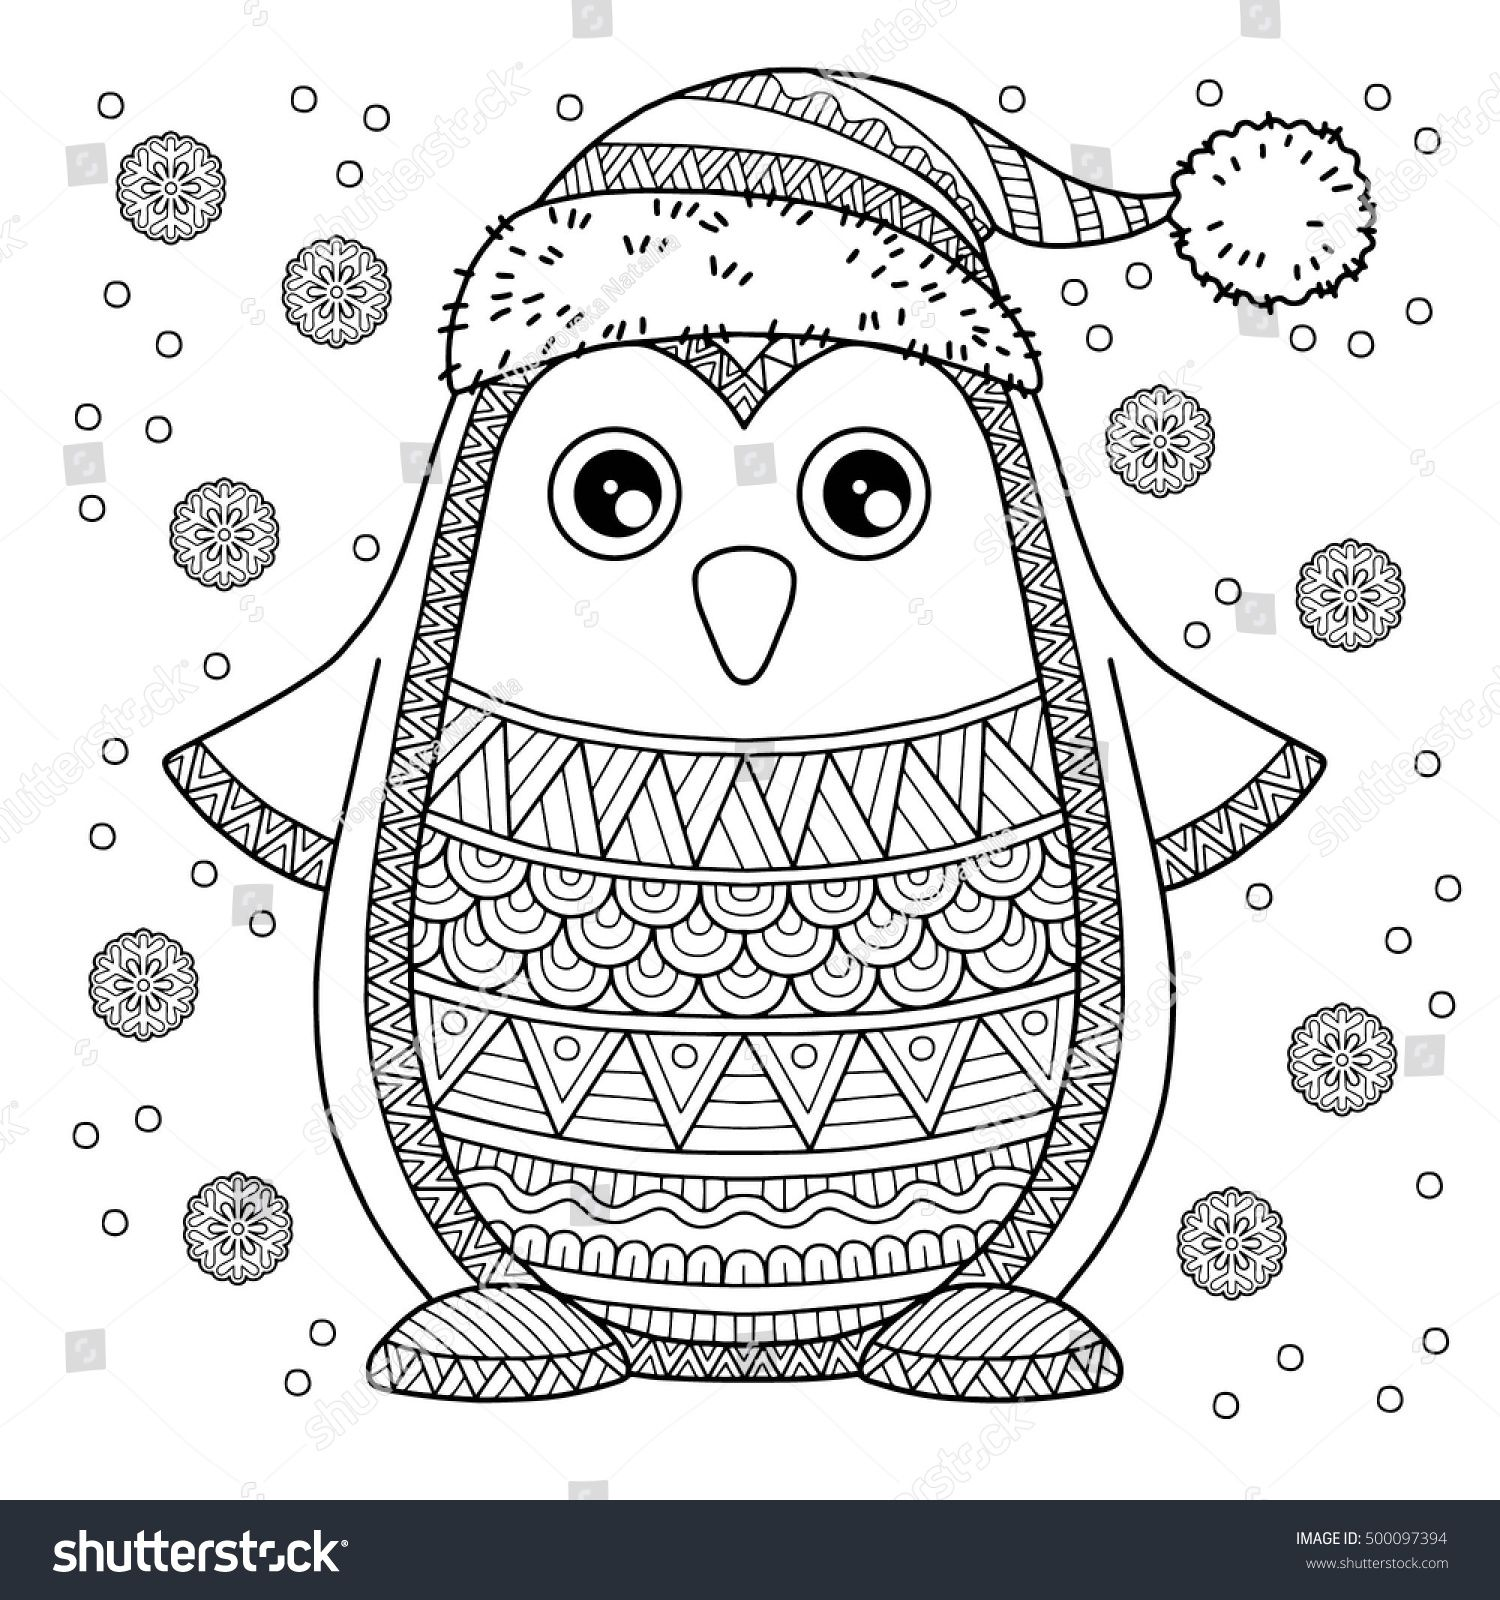 merry christmas jolly penguin the detailed coloring pages for adults image for design greeting cards